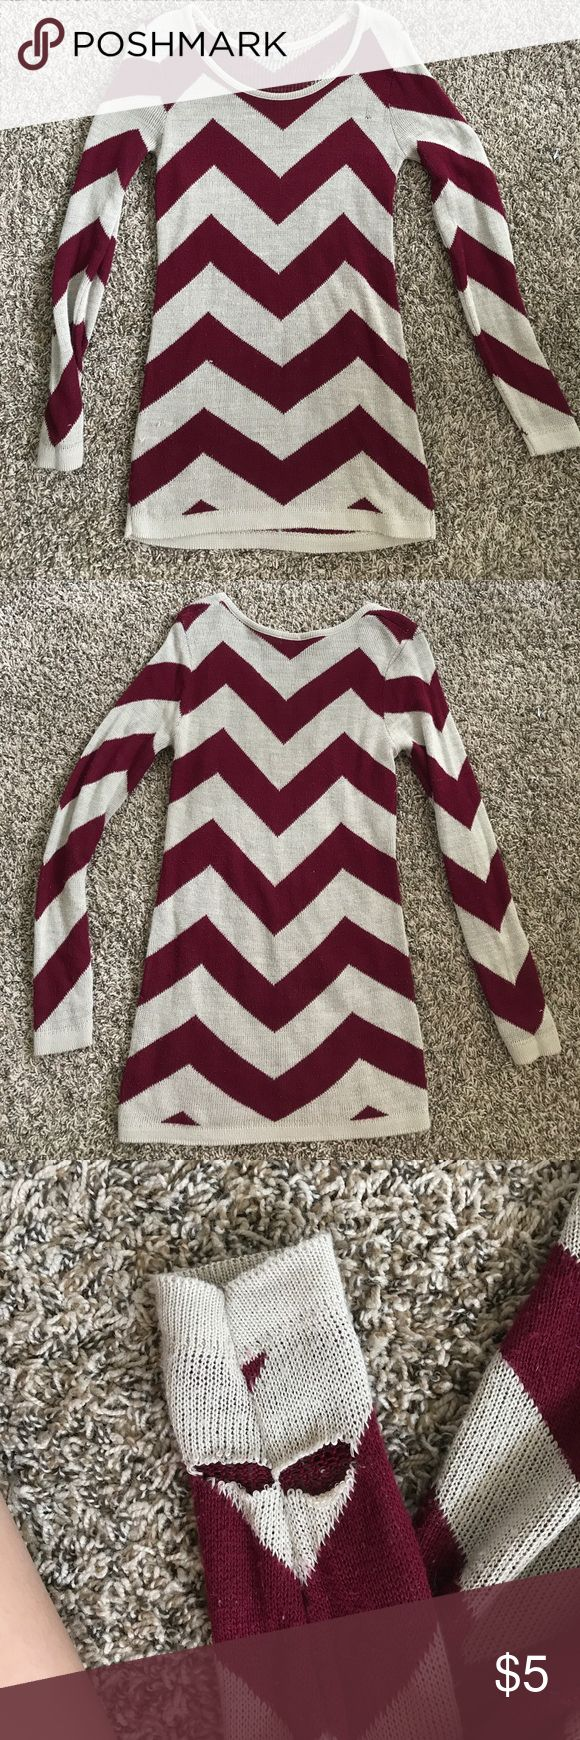 oversized sweater dress Zig zag design, burgundy pink color contrasted with the cream. Has some worn shown in the pictures and pilling, but still can be worn as a cute going out dress in the winter! 100% acrylic Charlotte Russe Dresses